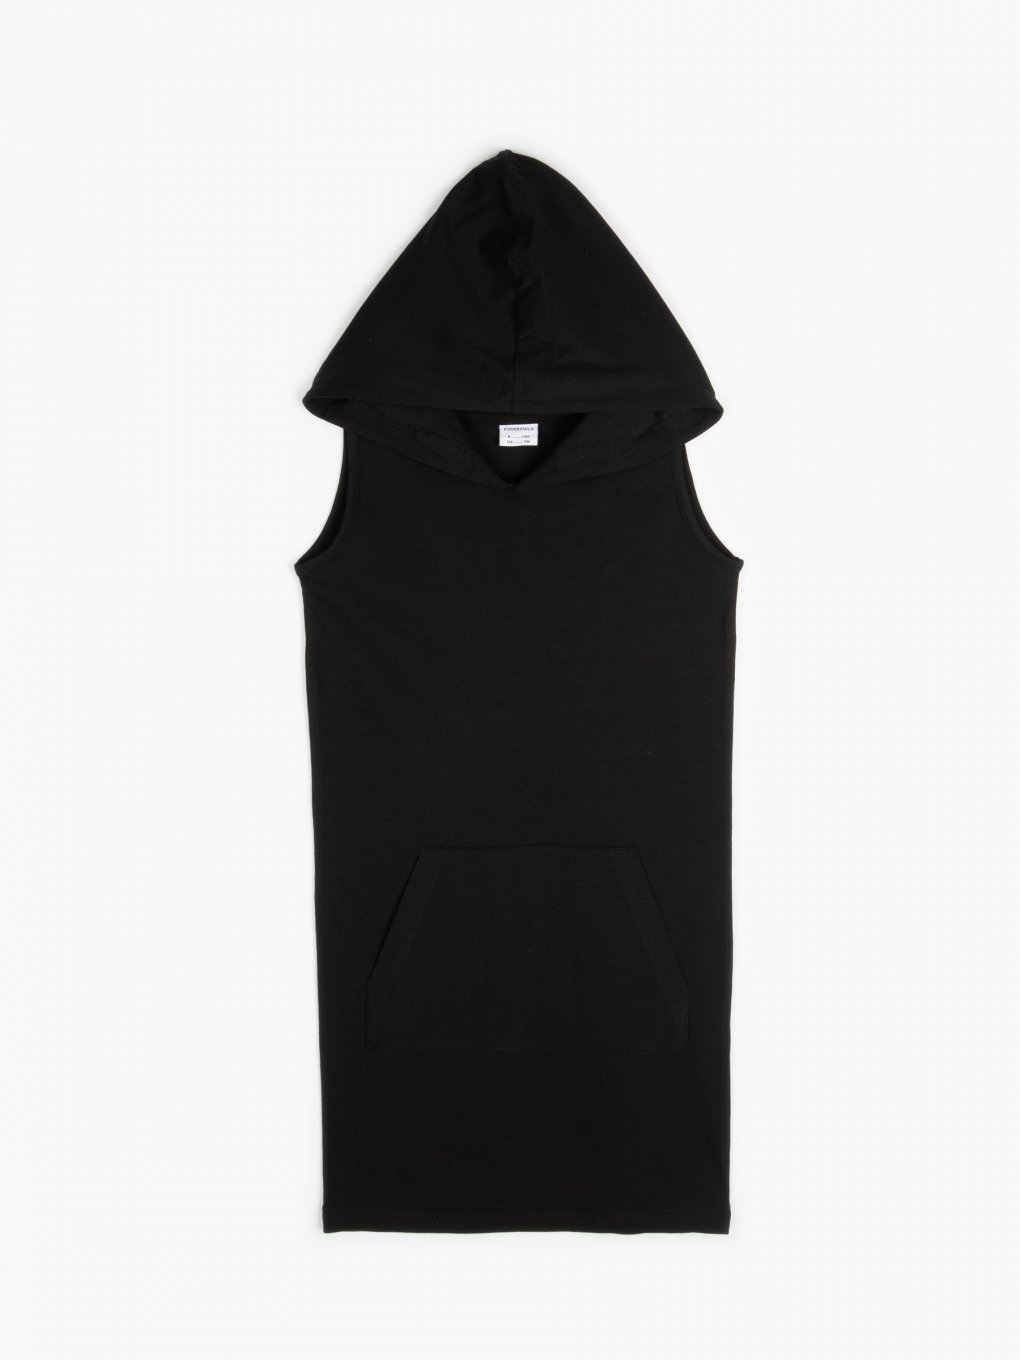 Sleeveless sweatshirt dress